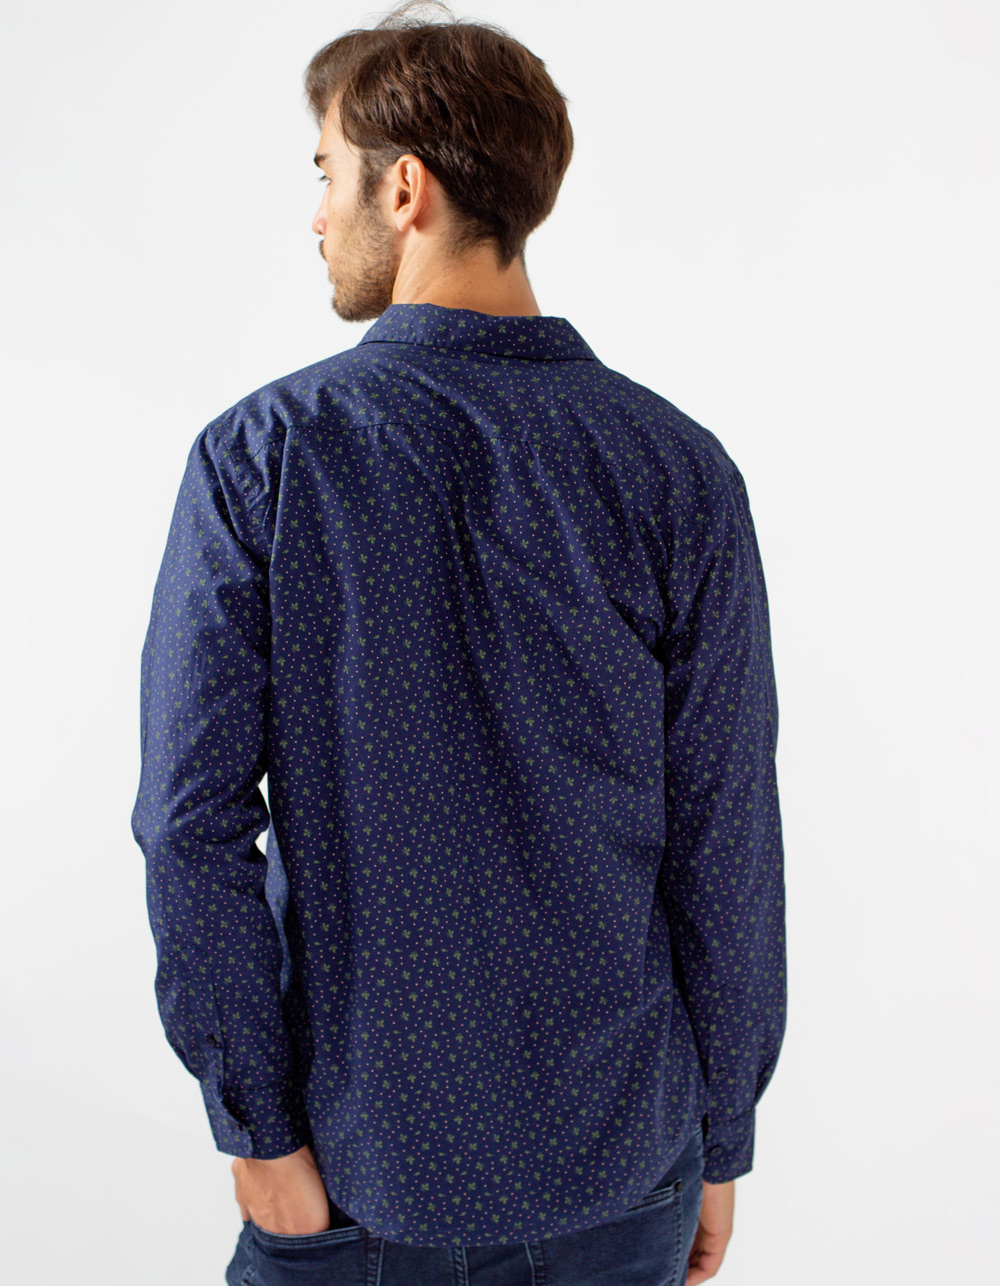 Blue overshirt with print - Backside